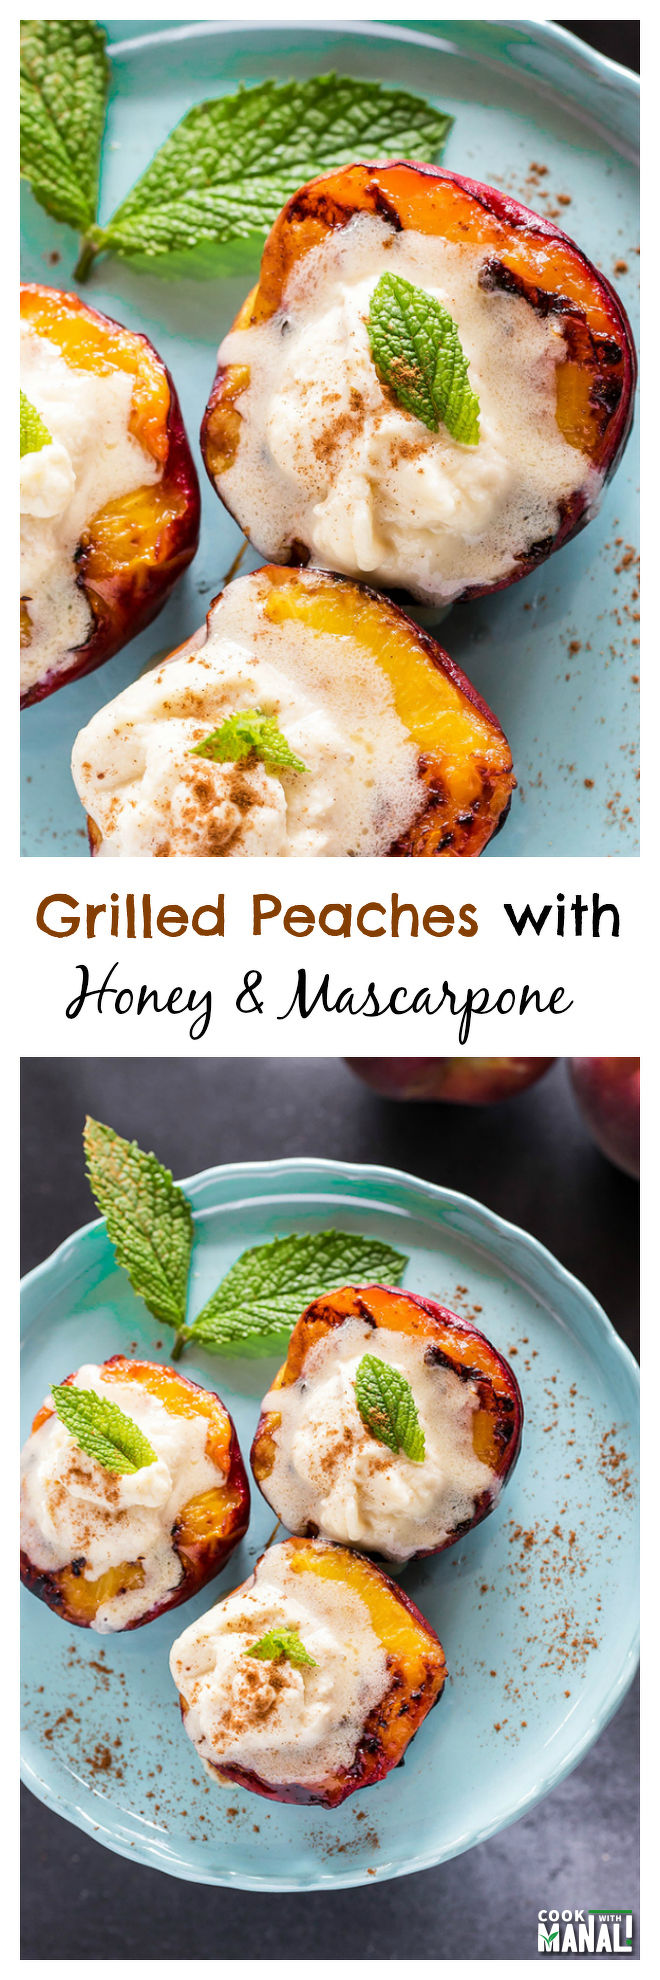 Grilled Peaches with Mascarpone Cheese-Collage